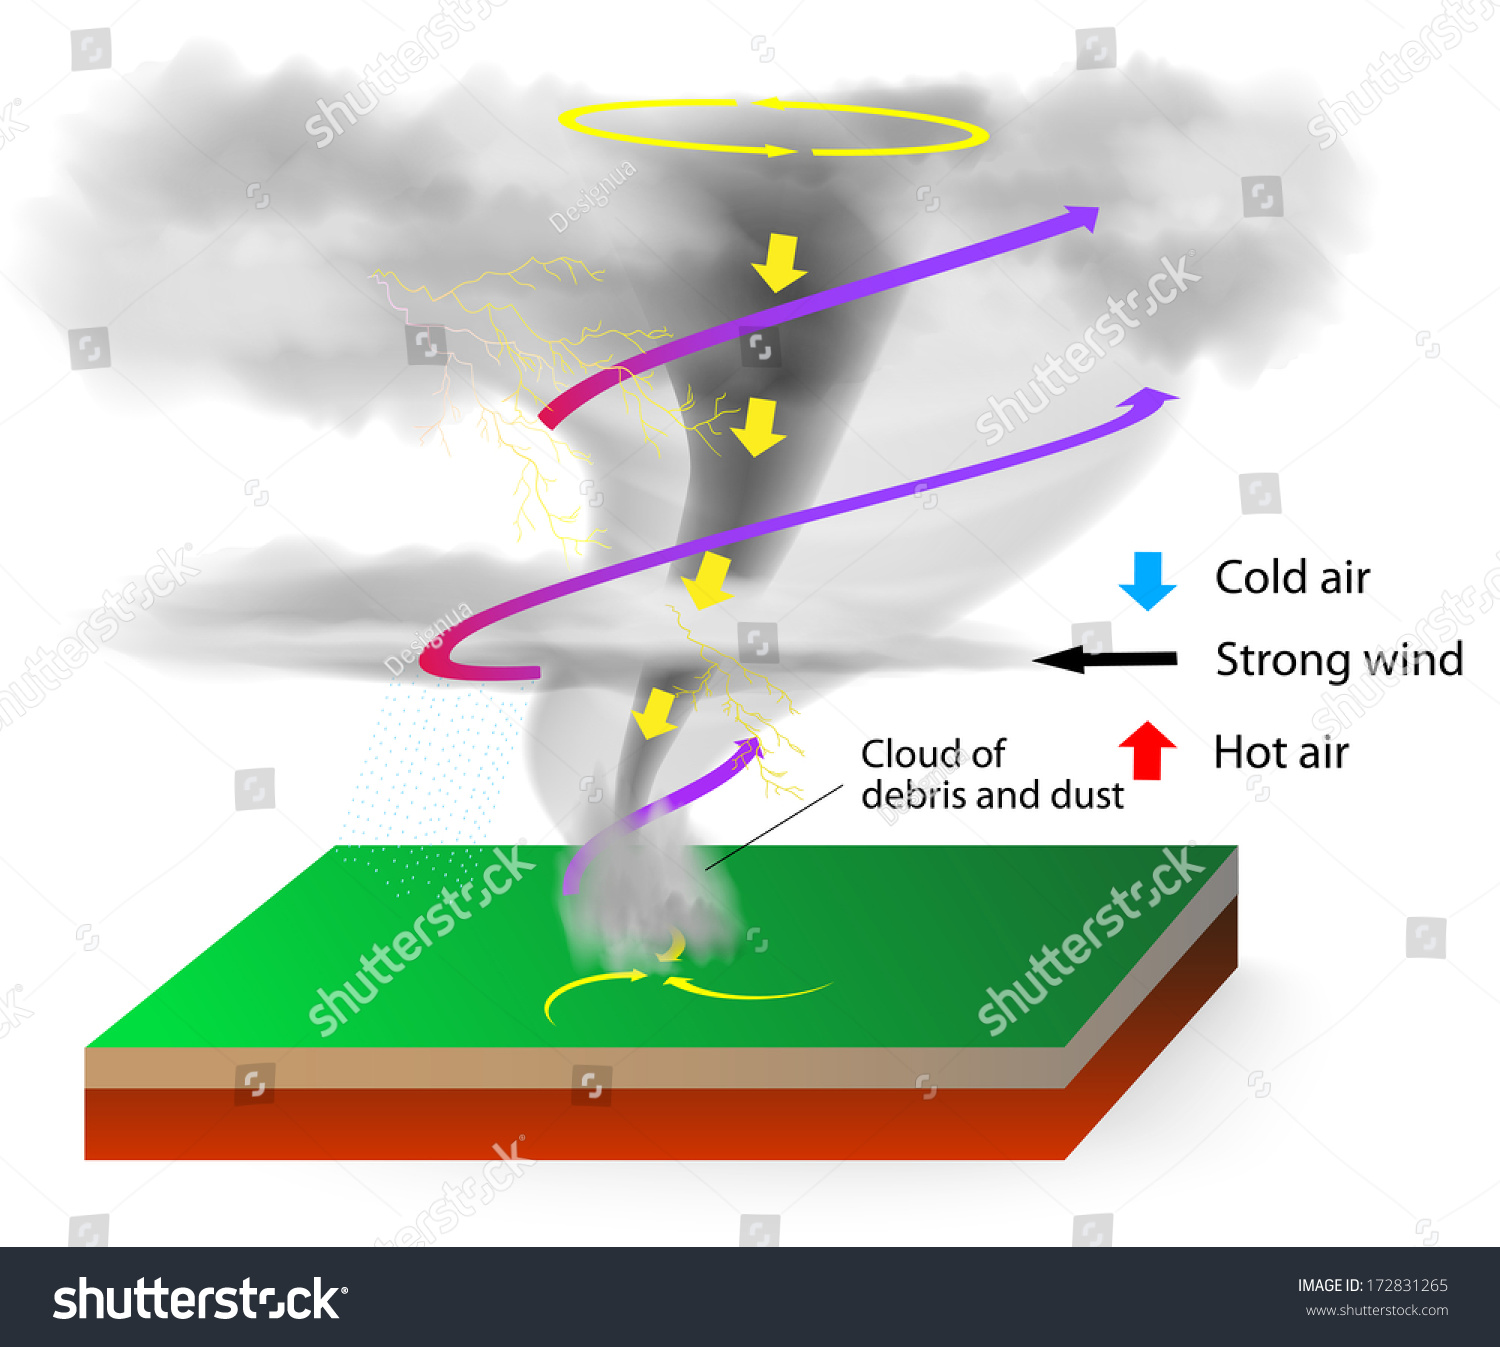 tornadoes of a visible condensation funnel whose narrow end  : tornado diagram - findchart.co